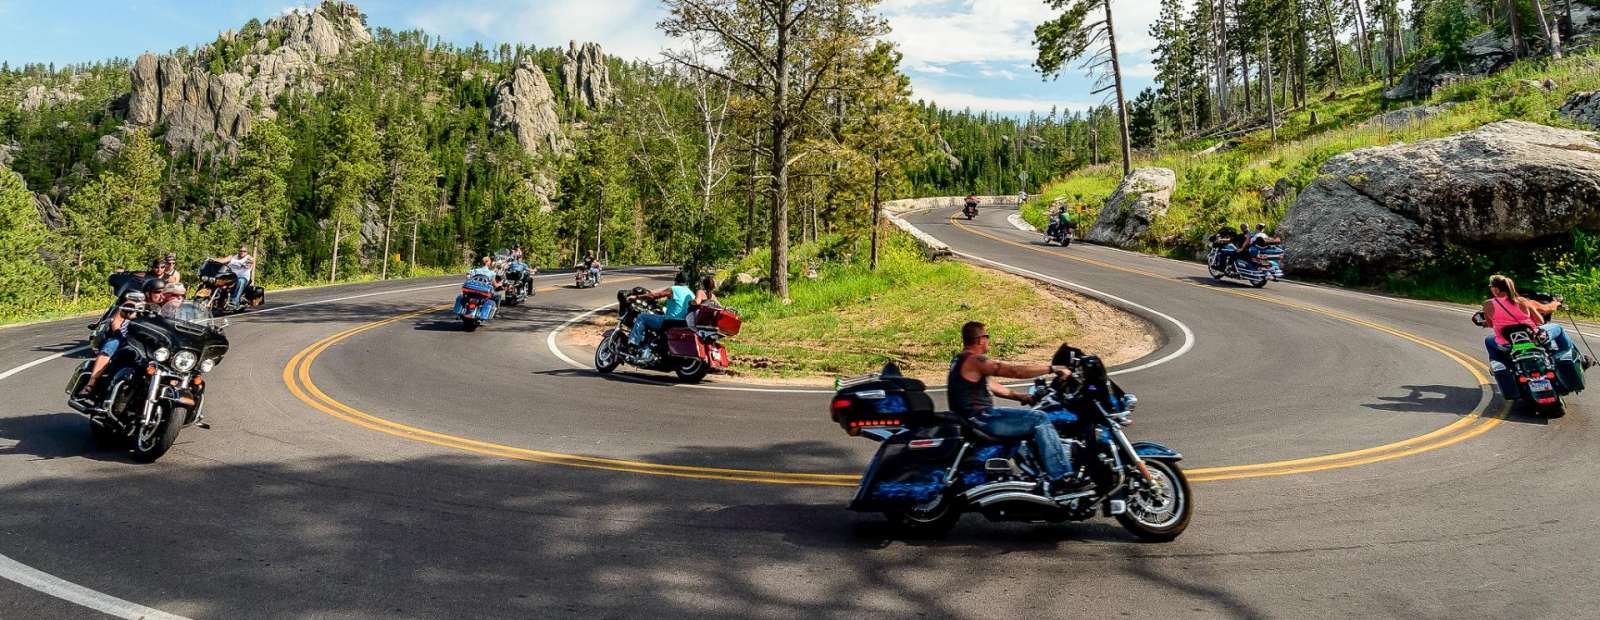 Surviving the Sturgis Rally – Tips if You are Involved in a Motorcycle Accident